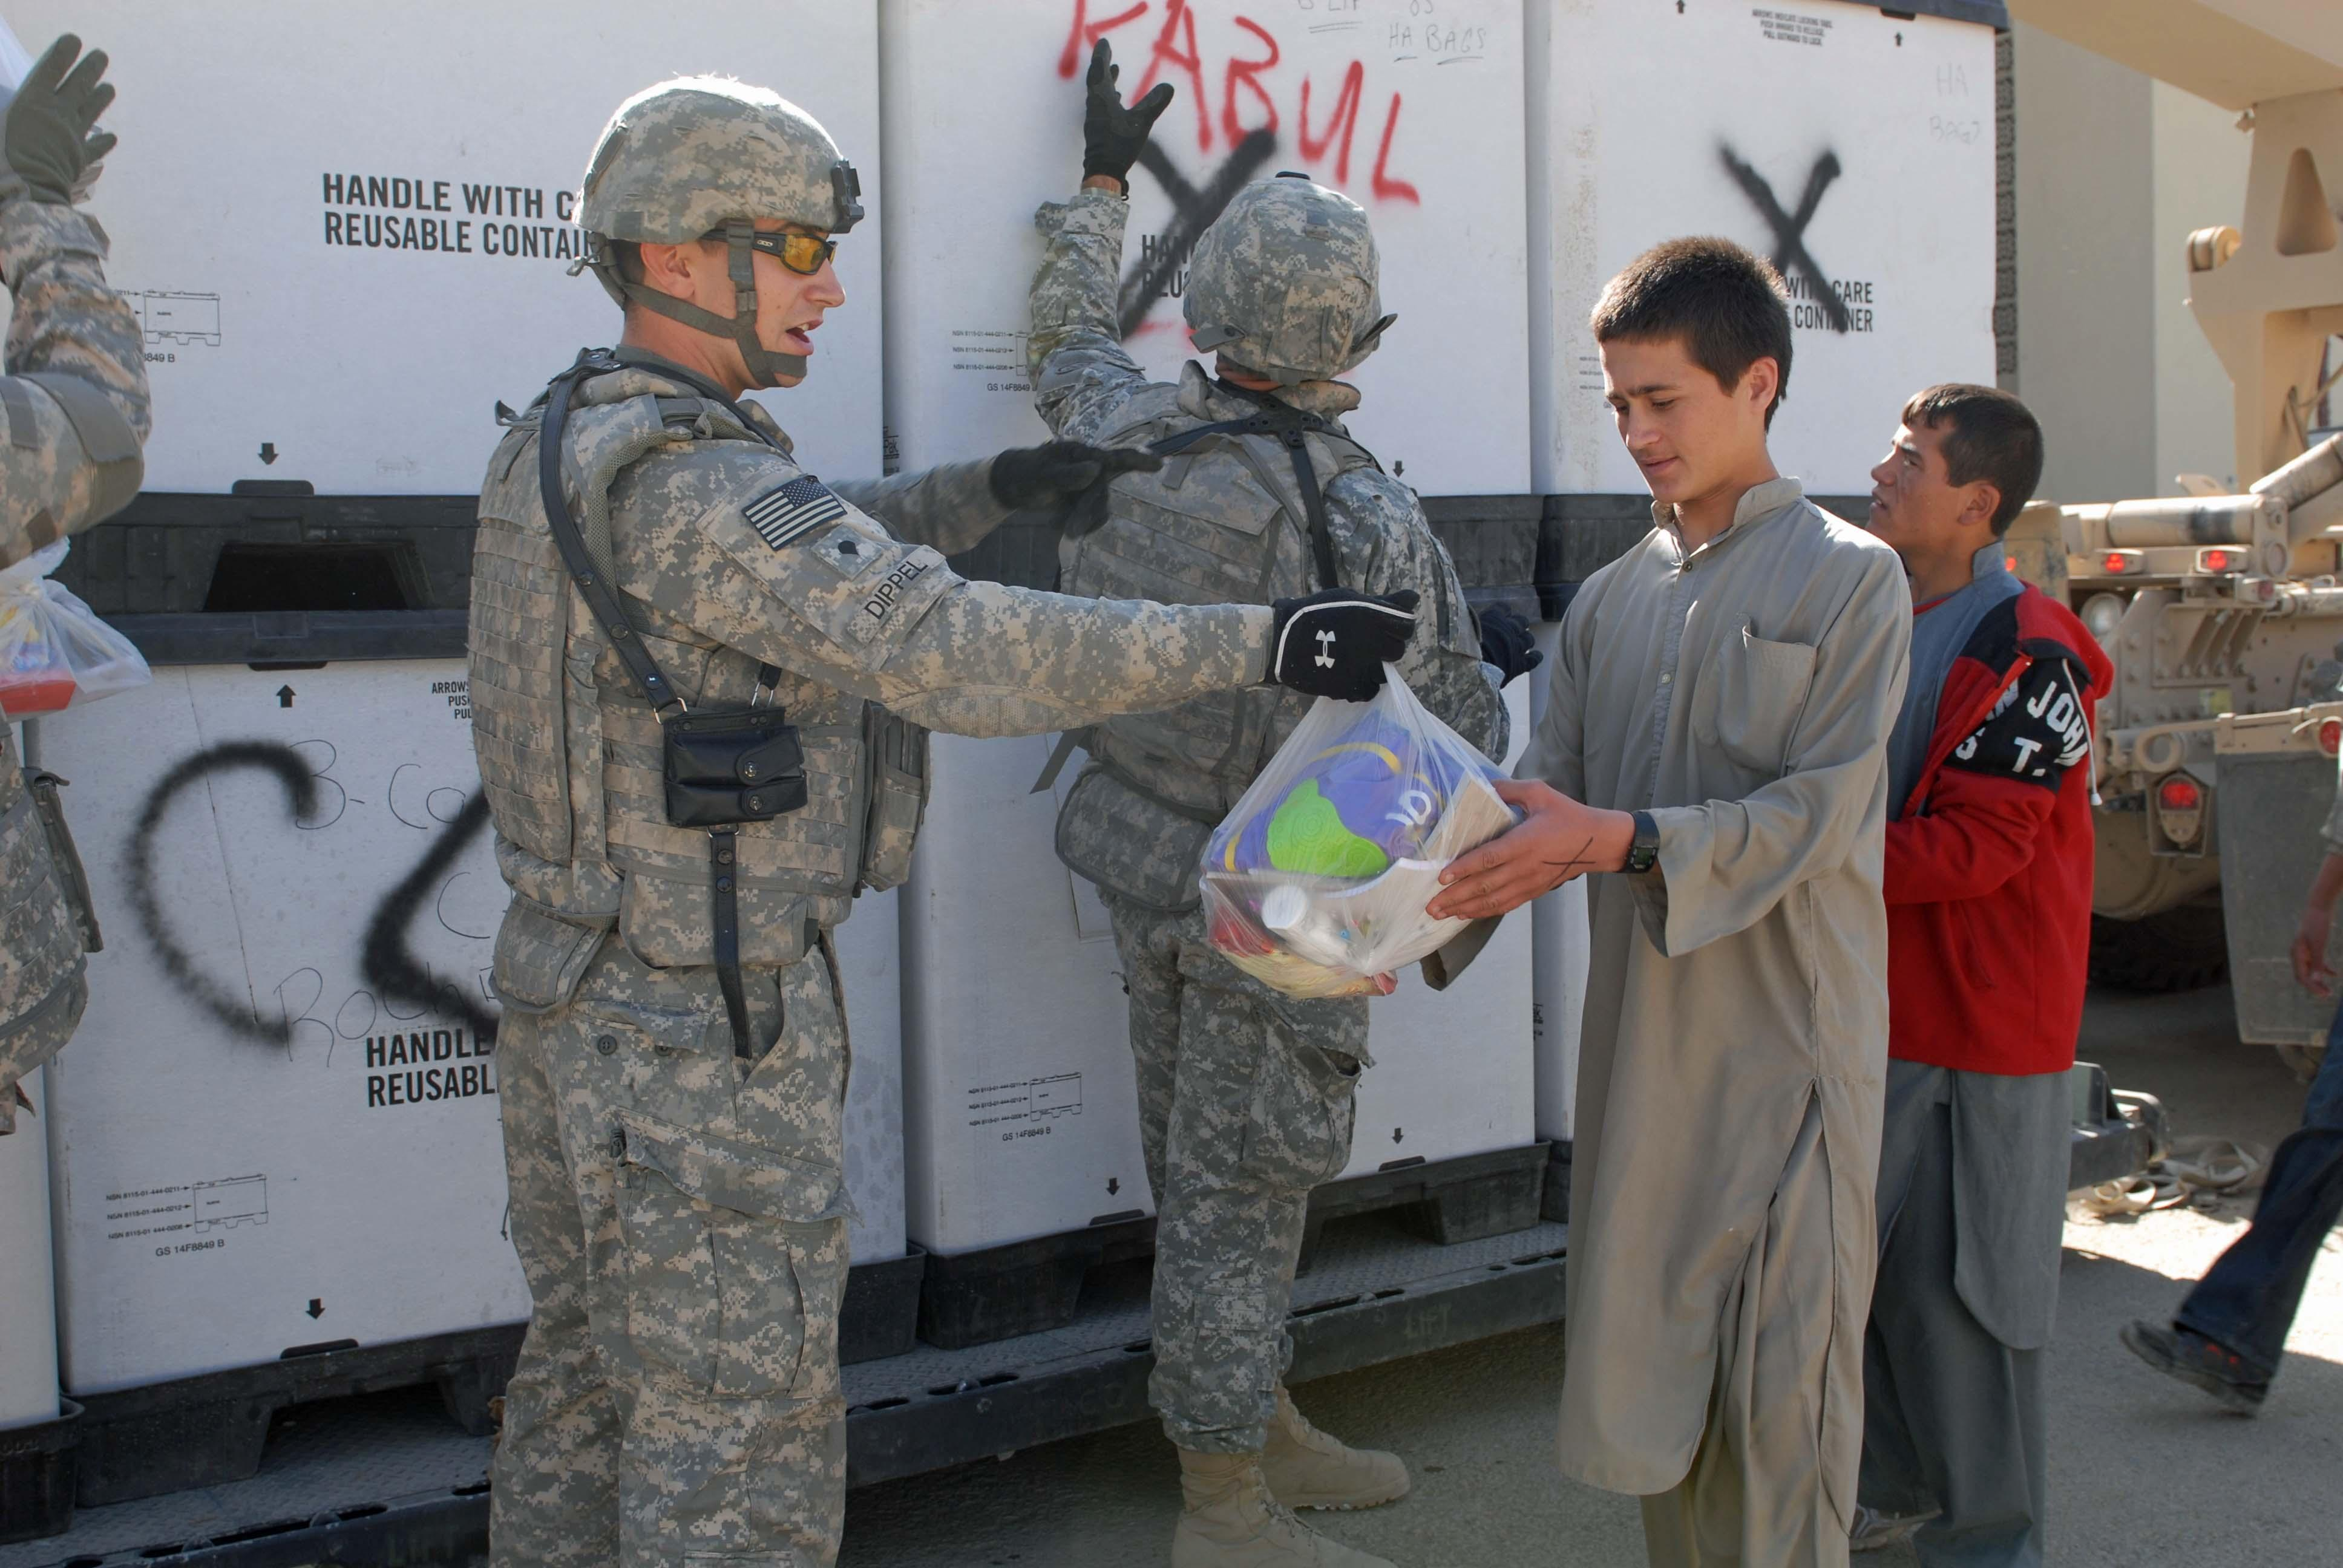 Troops%20Deliver%20Donations%20from%20Home%20to%20Kabul%20Orphanage